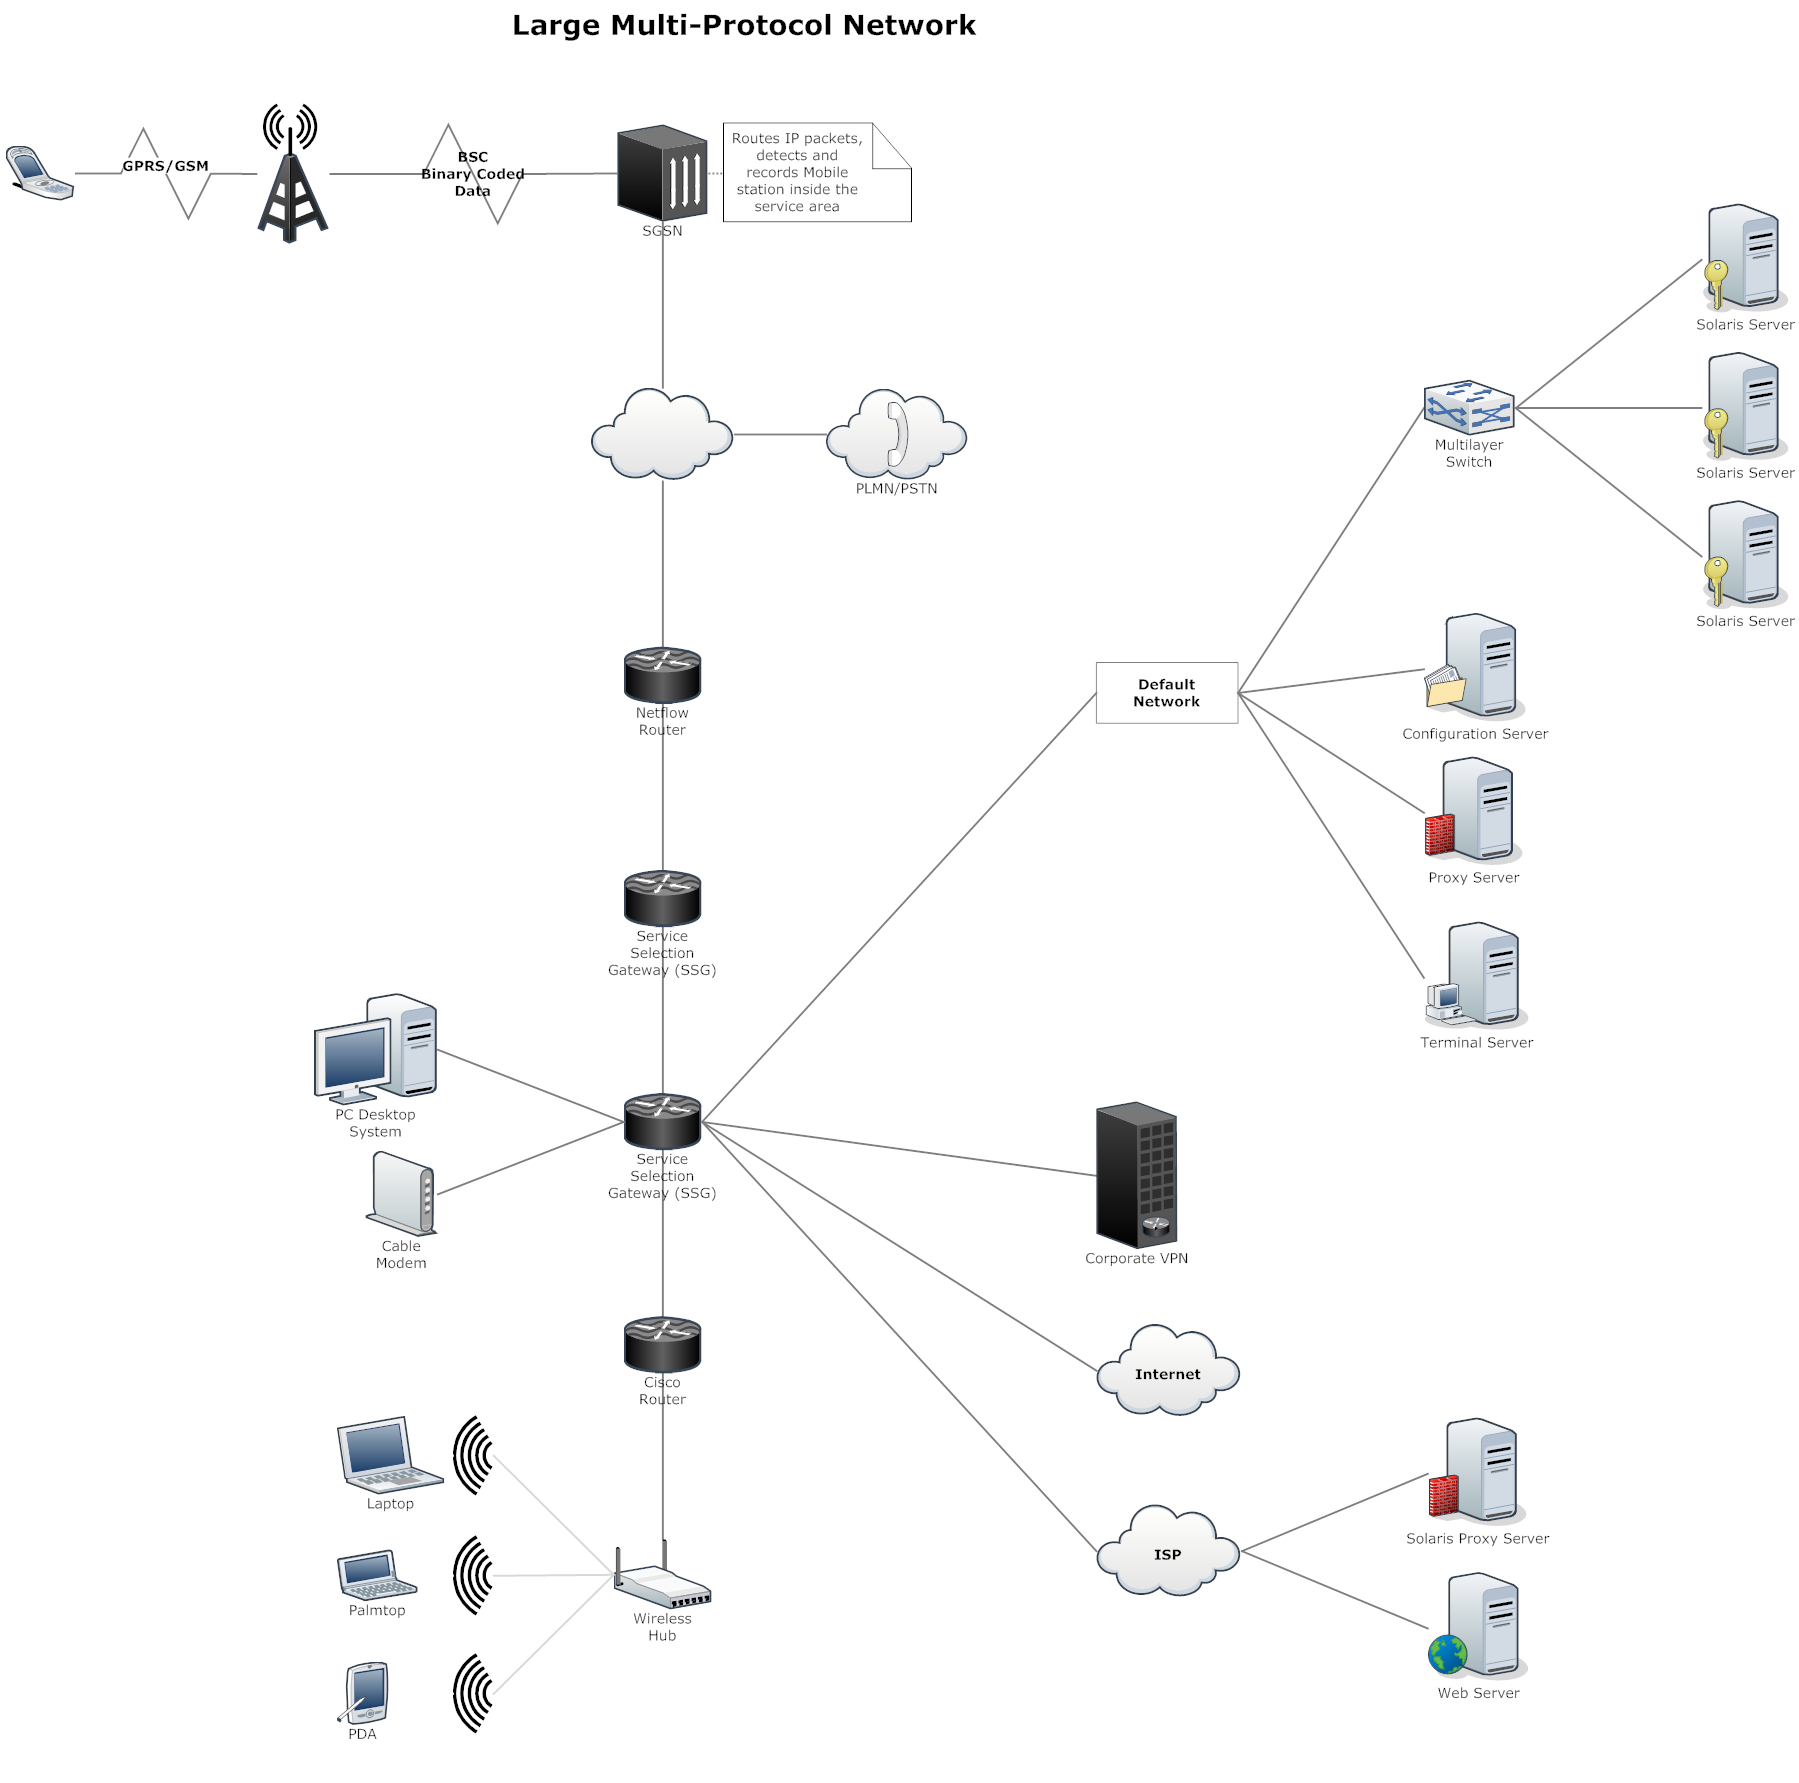 Visio Site Map Examples: Large Multi-Protocol Network